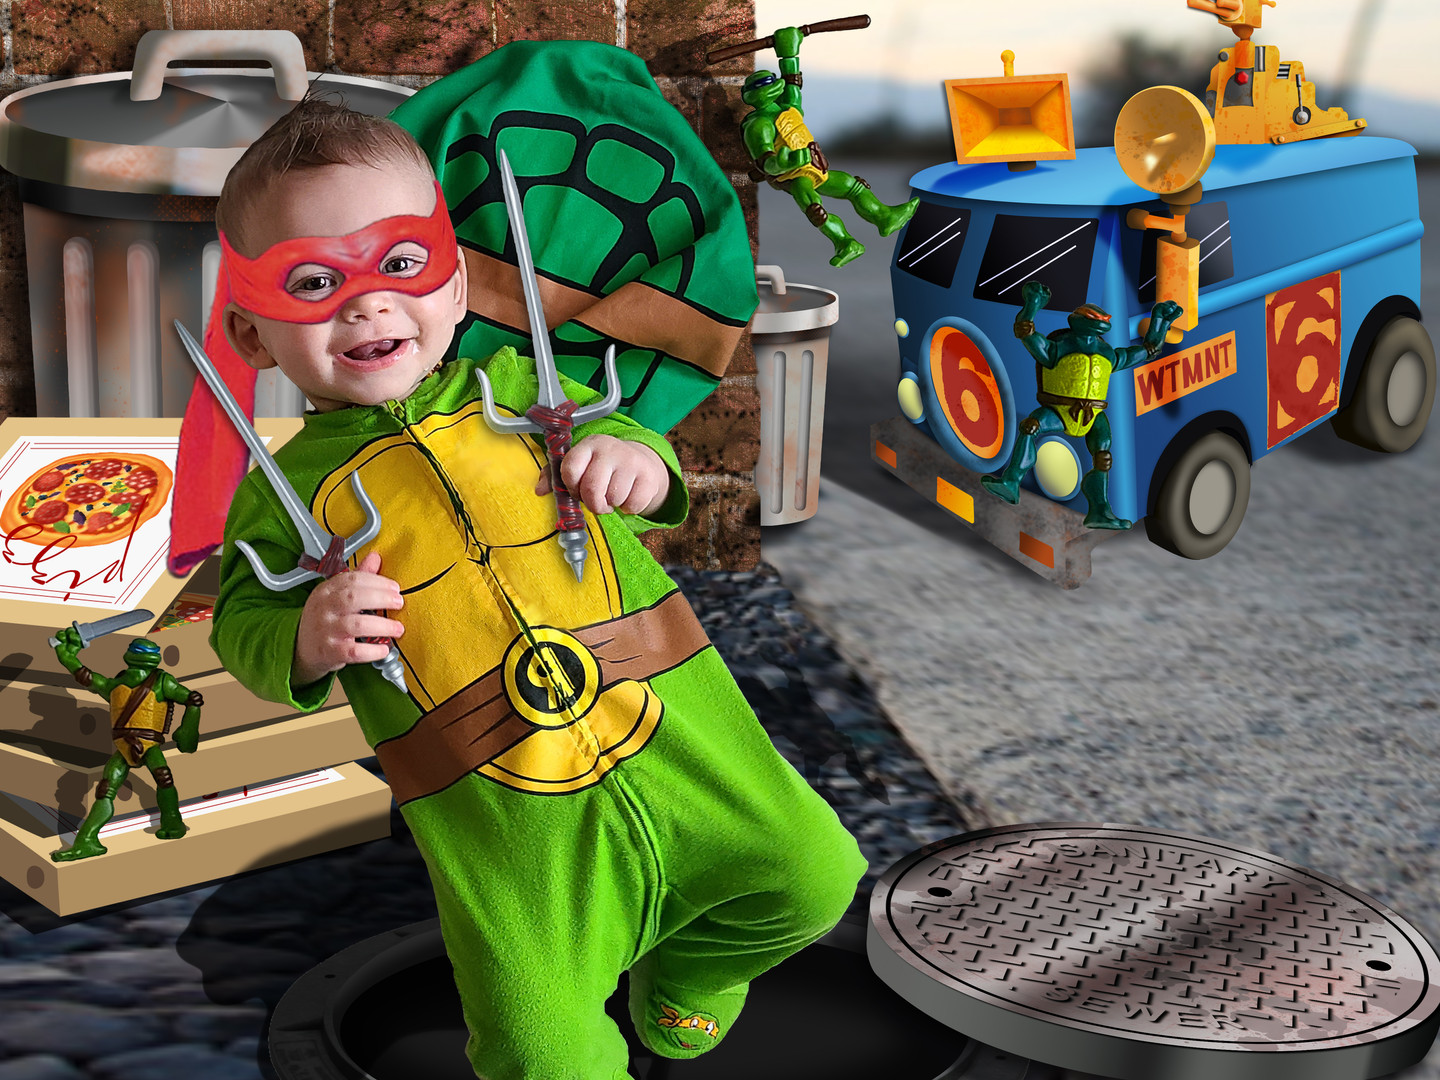 ninja turtle in the city with mask.jpg